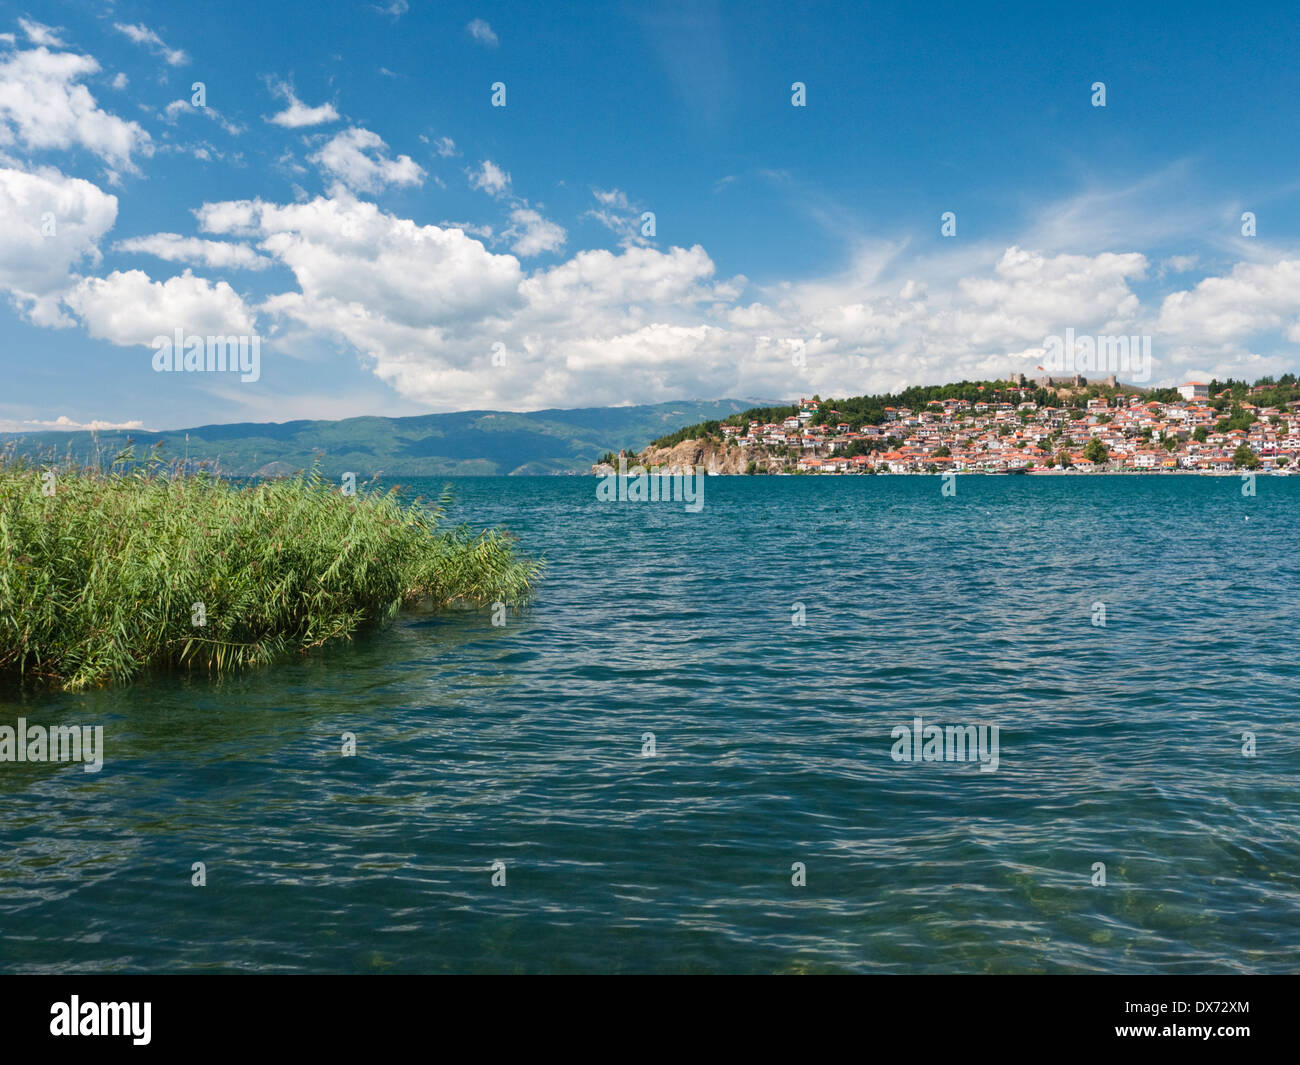 The UNESCO protected city and lake of Ohrid, Macedonia - Stock Image